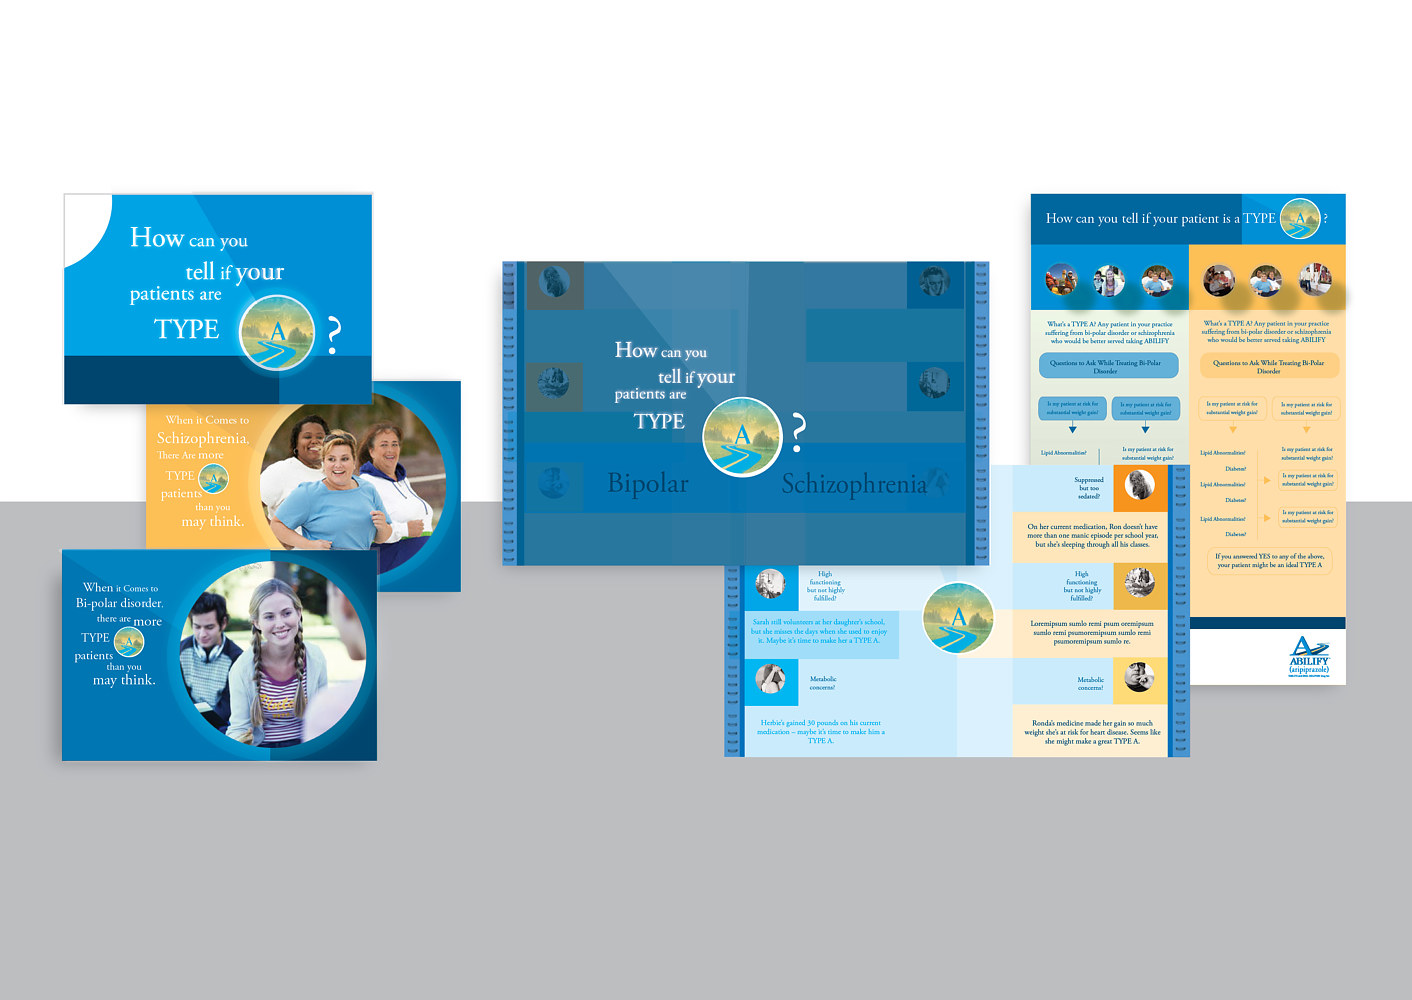 Corbett Healthcare | Pharmaceutical Marketing Agency | Abilify | Brochure by Nathalie Gribinski